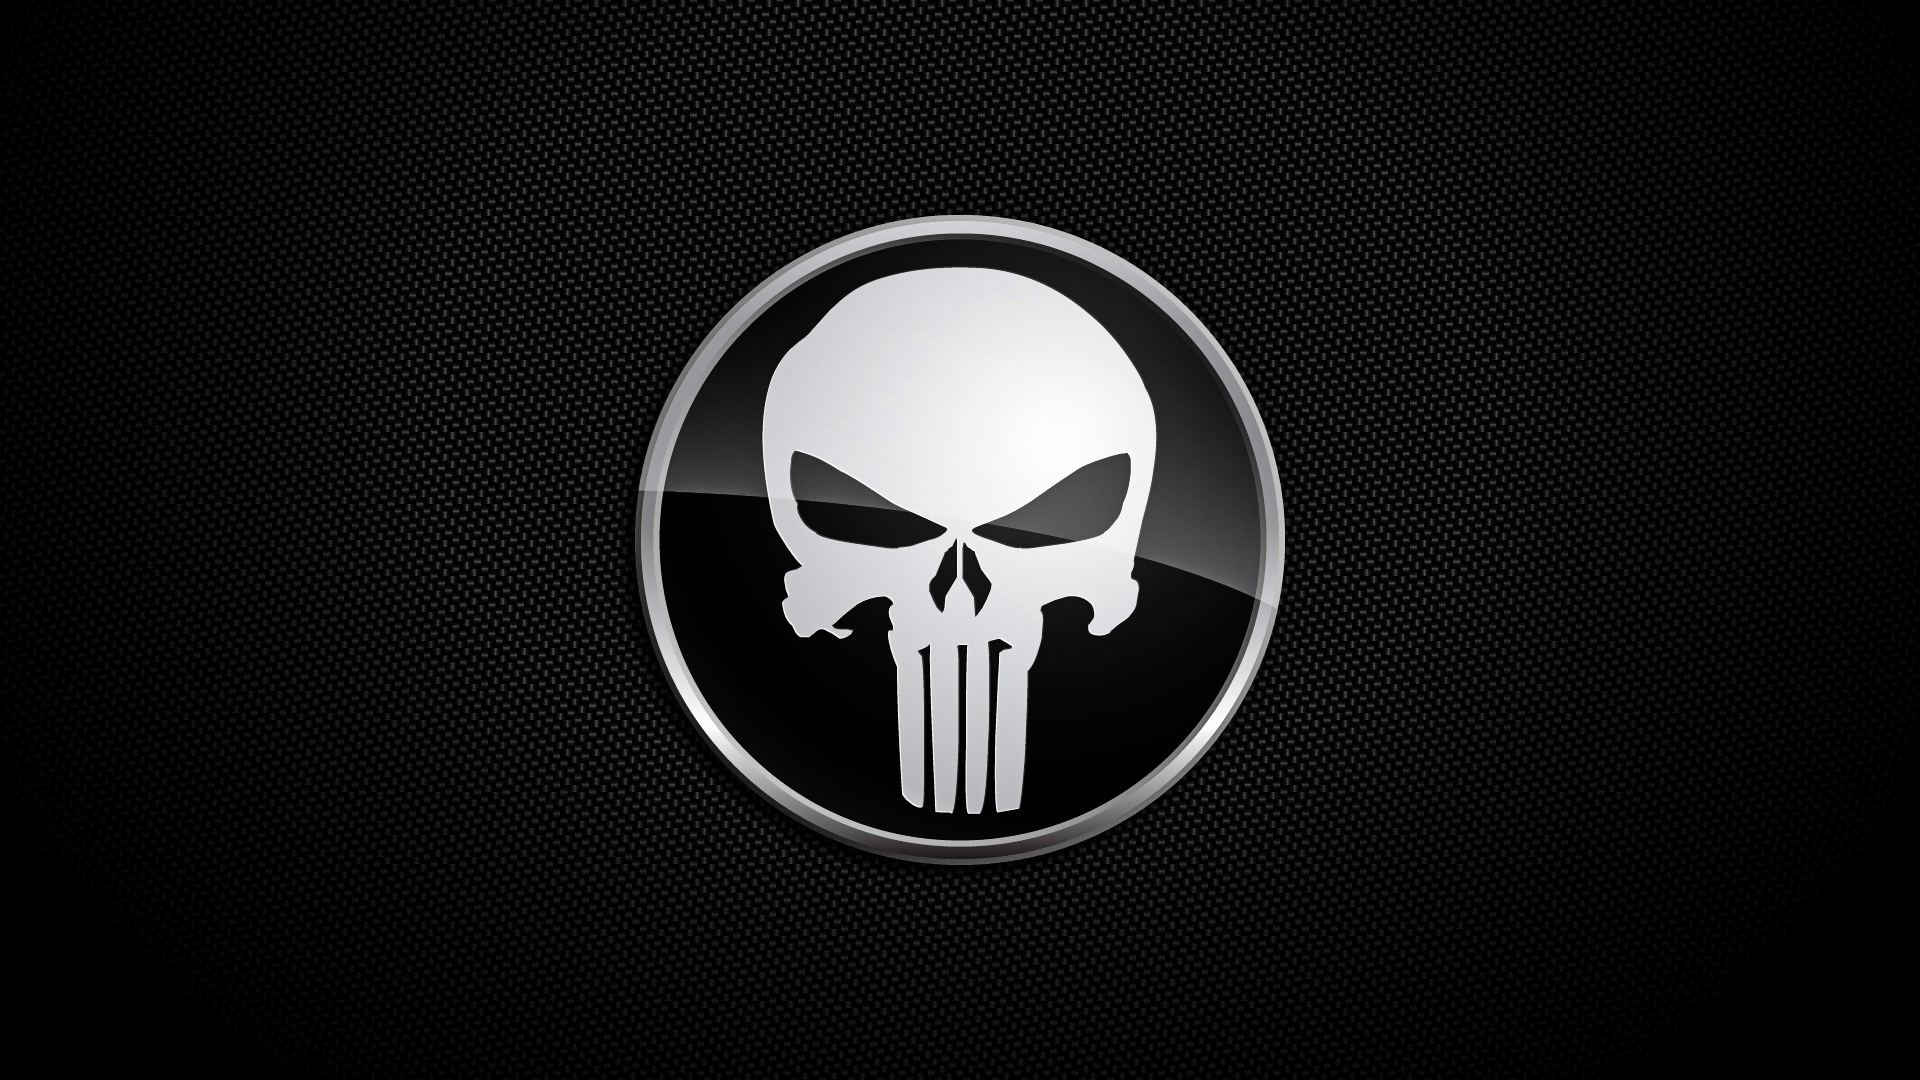 Skull Wallpaper 1080p Is Cool Wallpapers